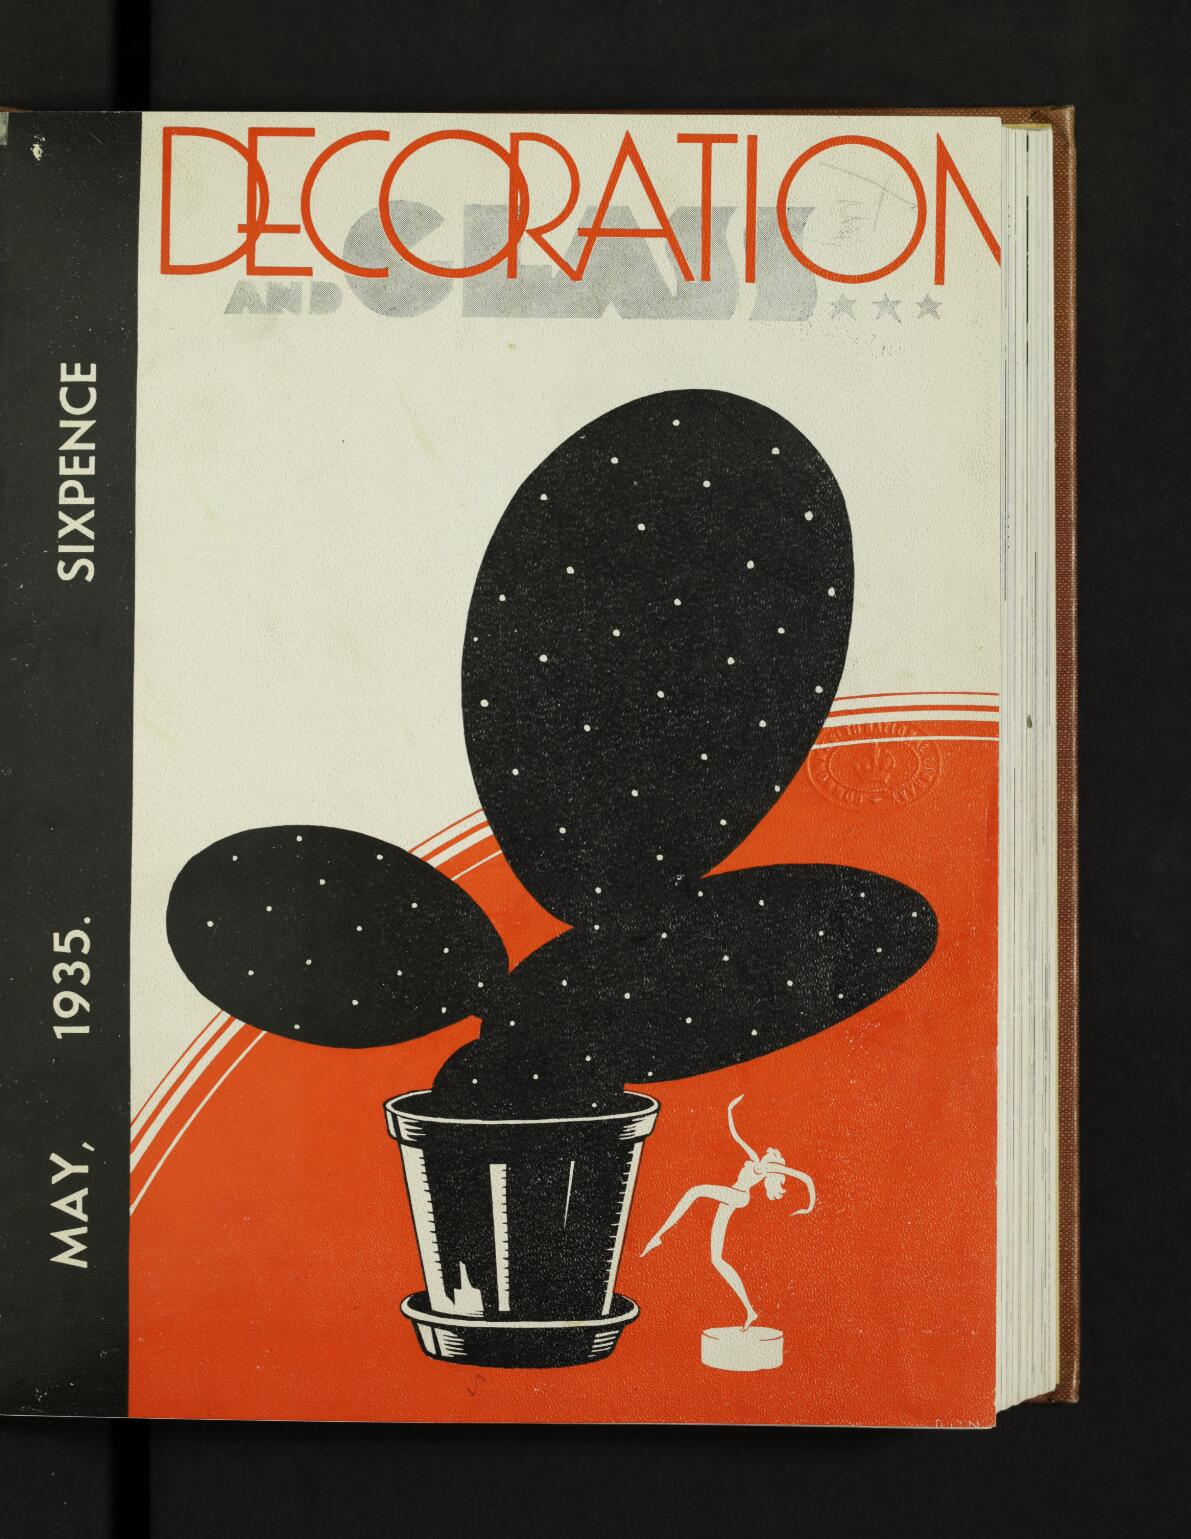 Decoration and Glass, Published by Australian Glass Manufacturers Co. Ltd, Dowling Street waterloo, NSW, Australia, Vol.1, No 1, 1 May, 1935